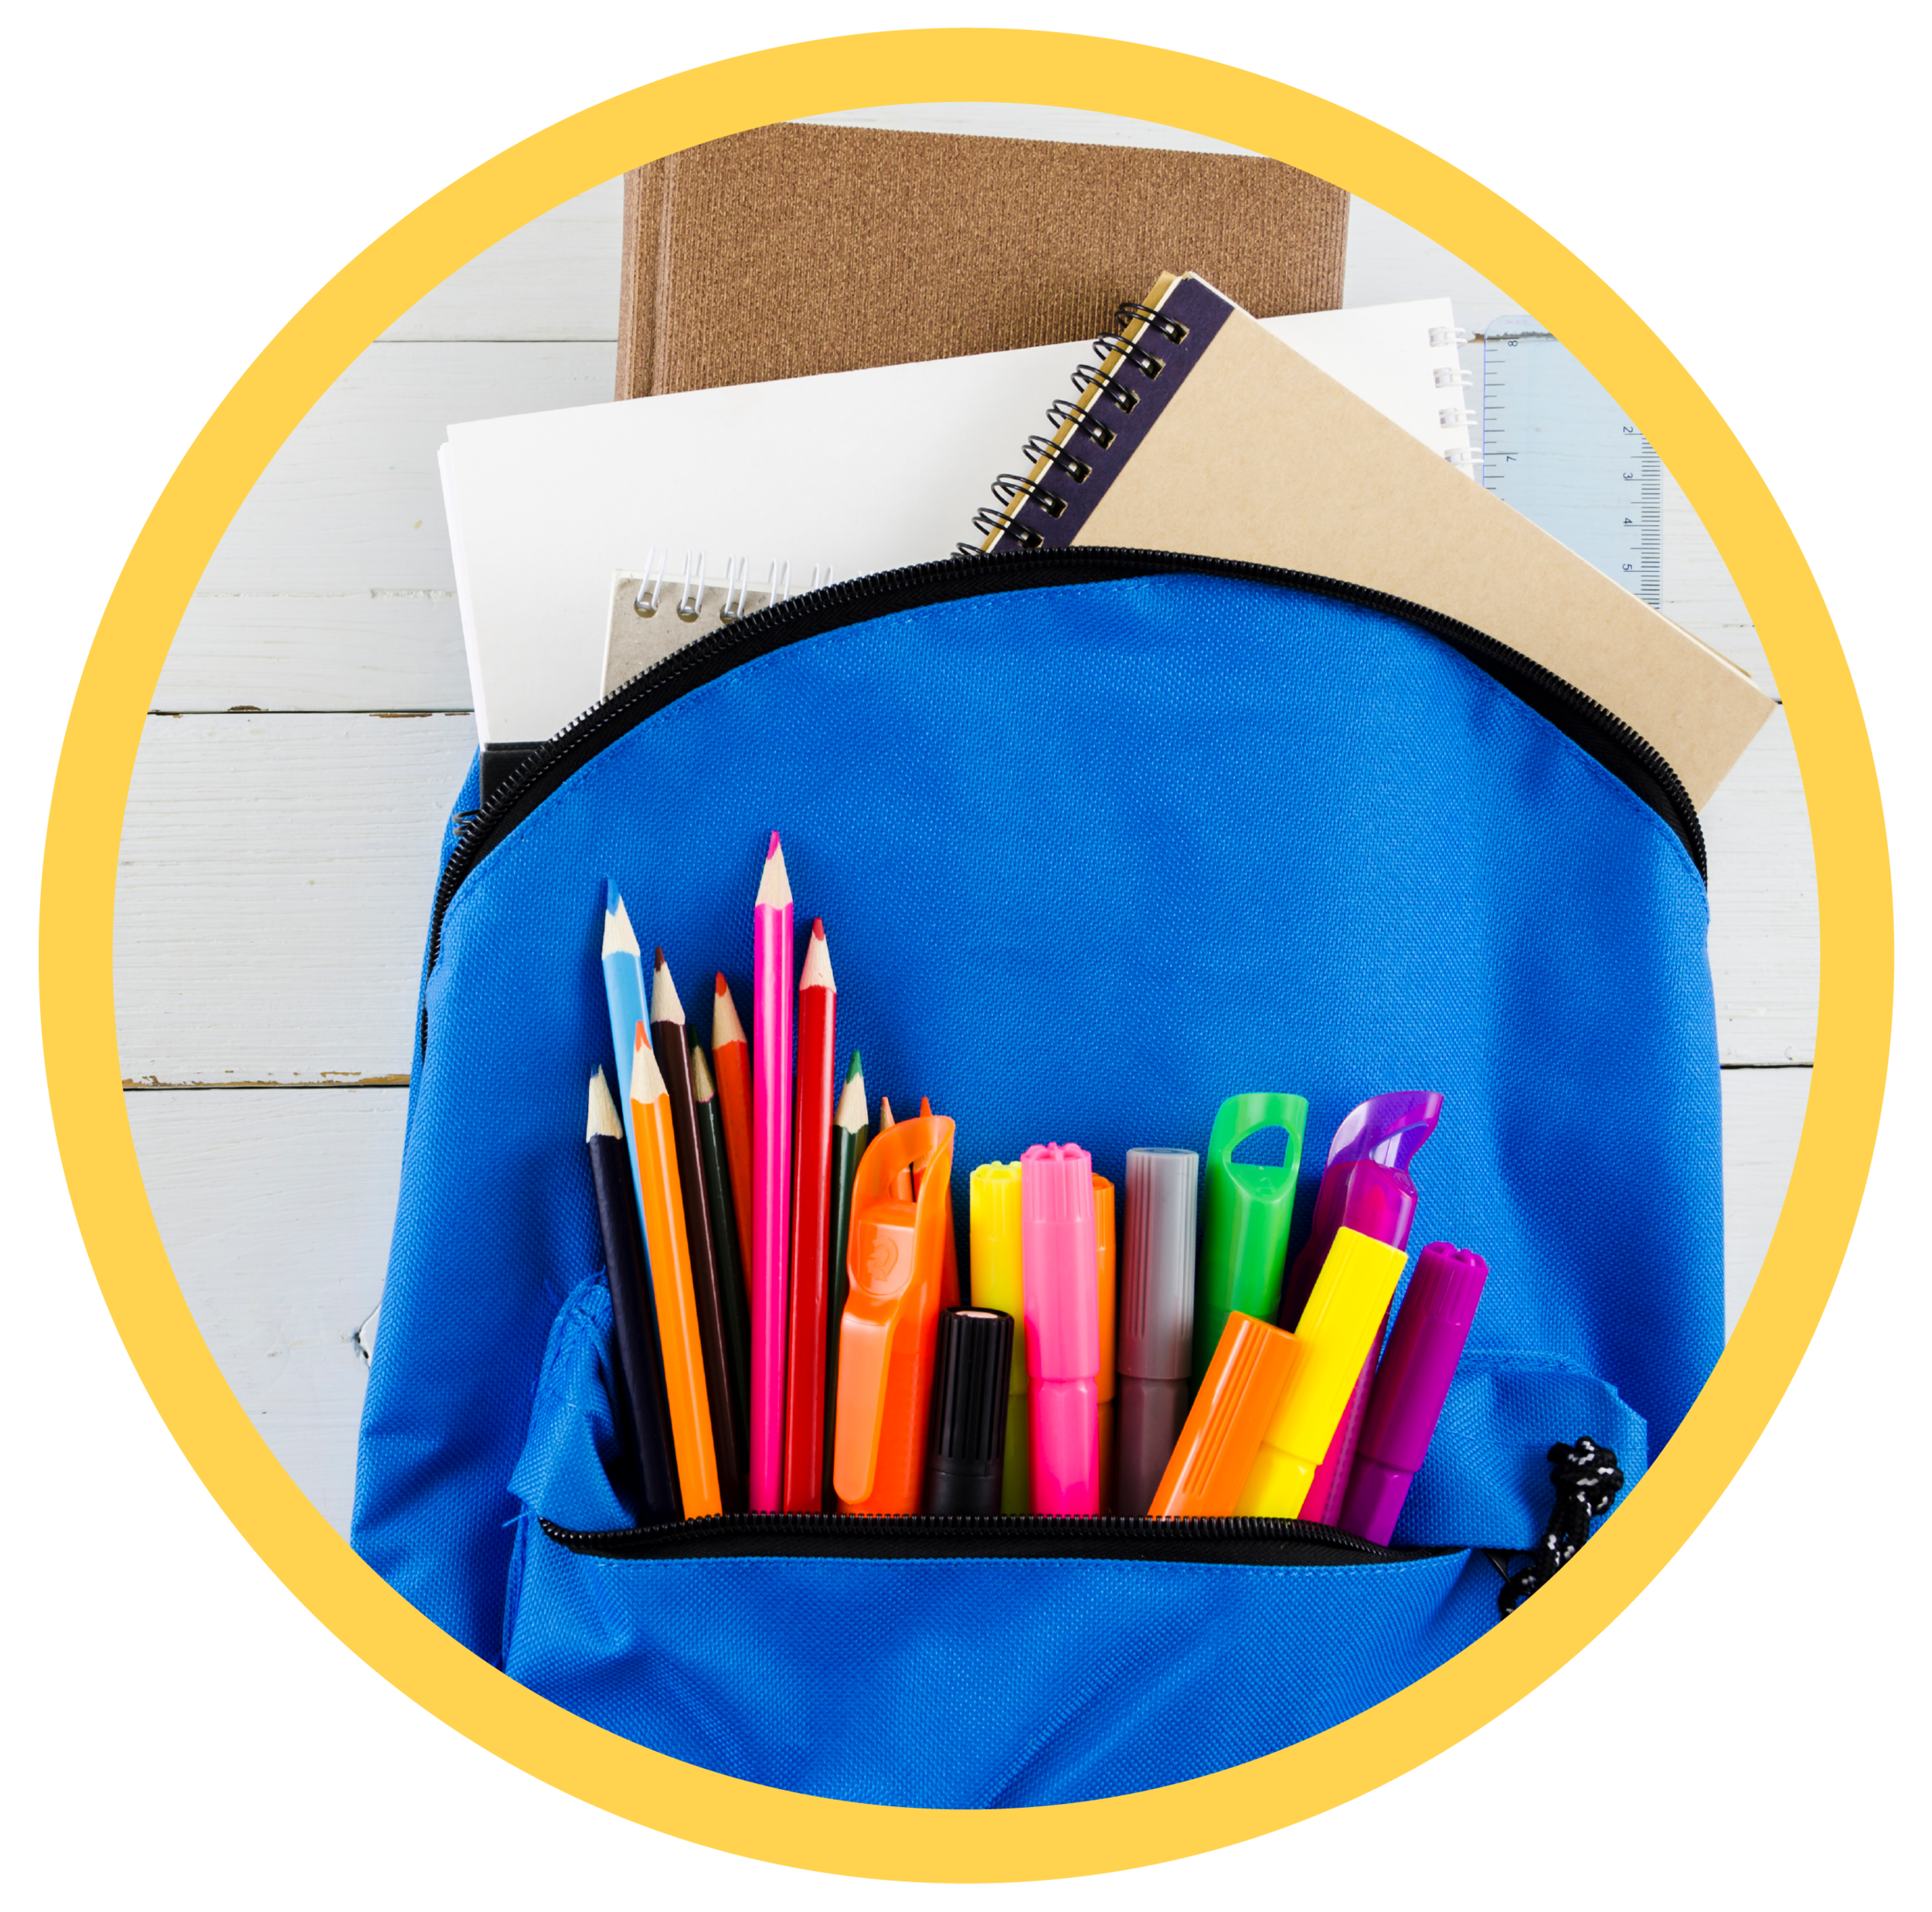 Back to School Supplies for Refugees - Help us meet our goal this summer of compiling 50 backpacks full of school supplies for refugee kids supported by Denver Health Foundation.August 16th 3:30-5:00pm